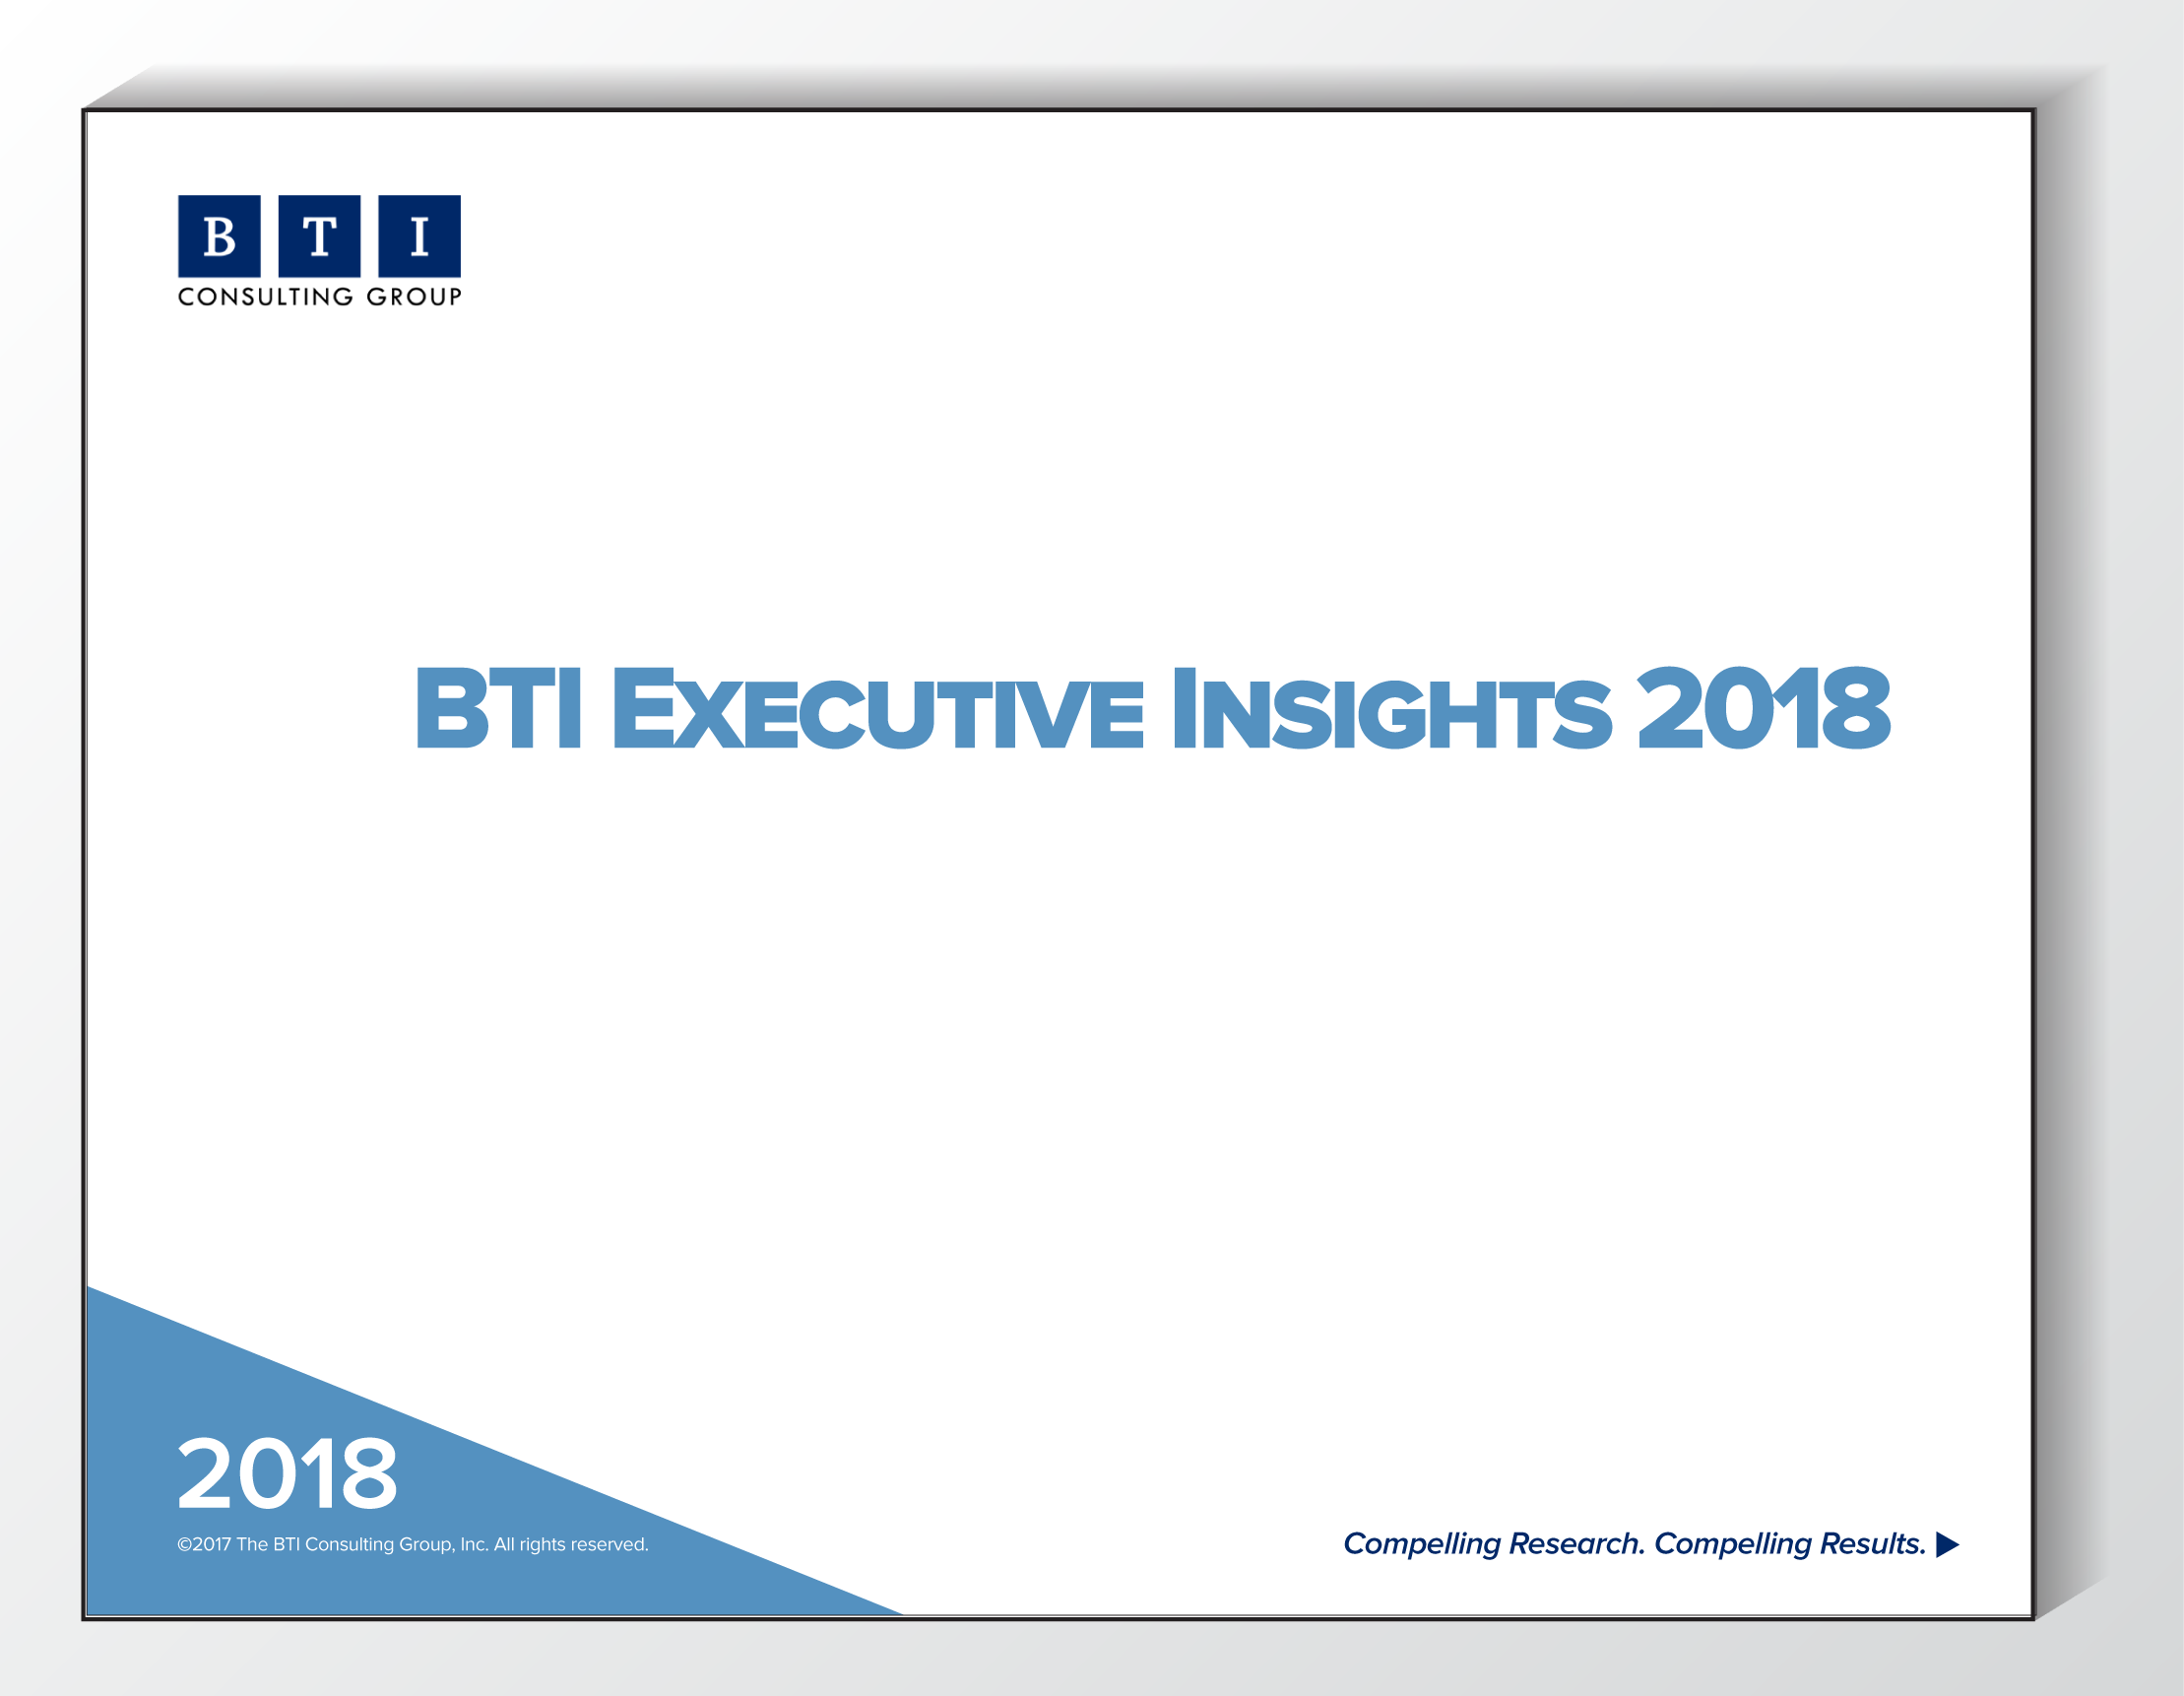 BTI_Executive_Insights_2018-02.png